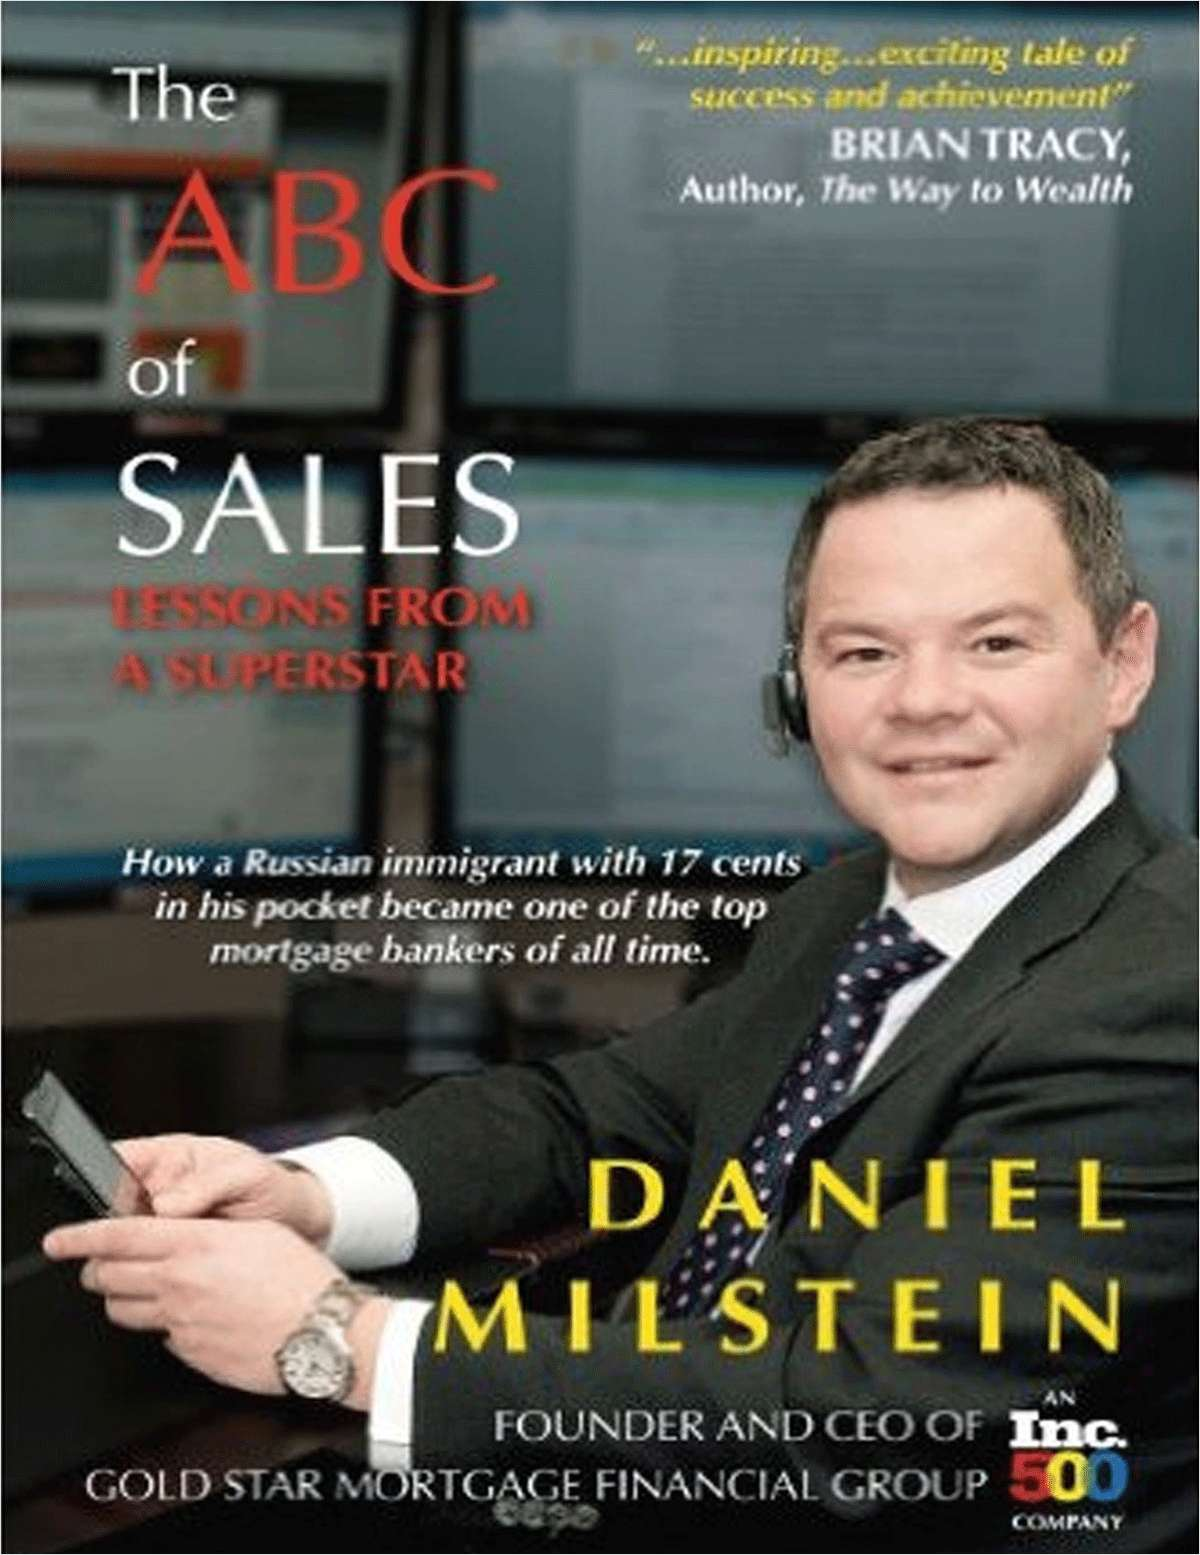 The Essentials of Sales Kit - Includes a Free ABC of Sales eBook